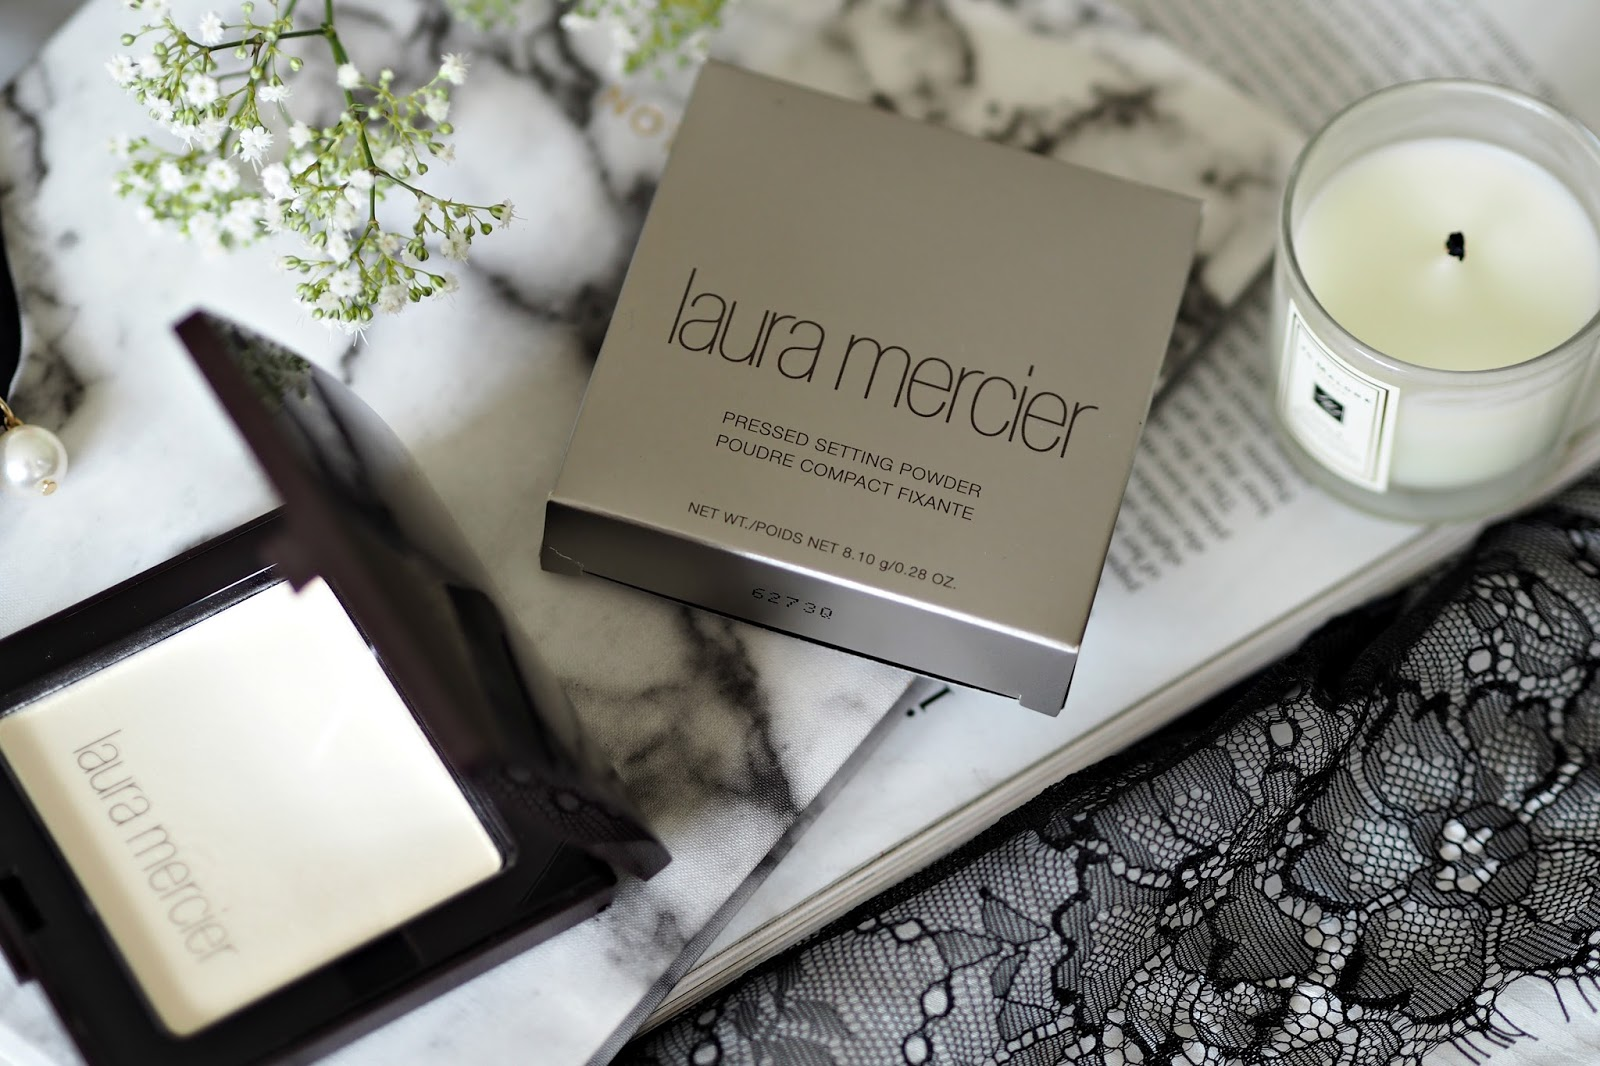 Laura Mercier Translucent Pressed Setting Powder in-depth review